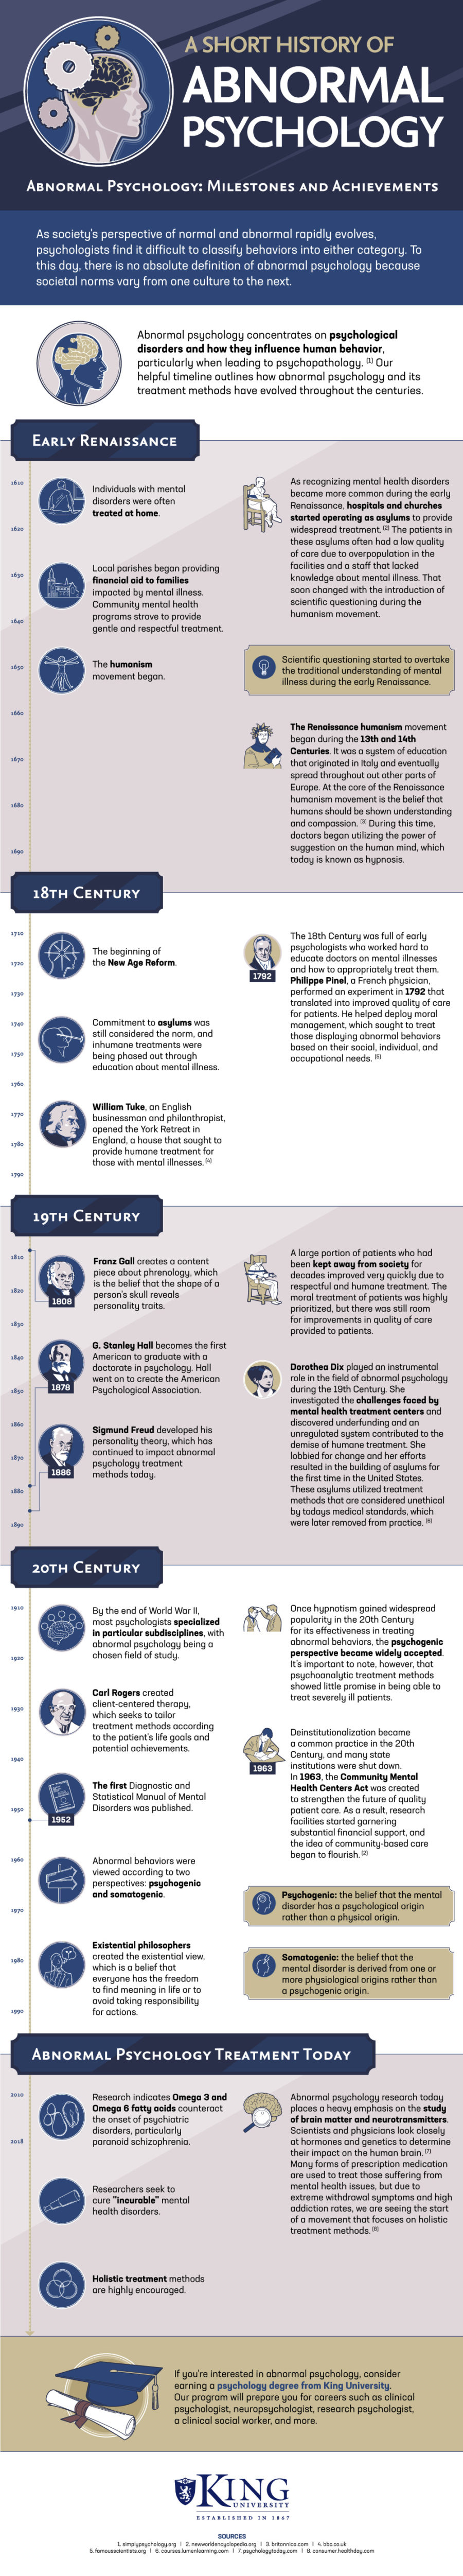 A Short History of Abnormal Psychology Infographic